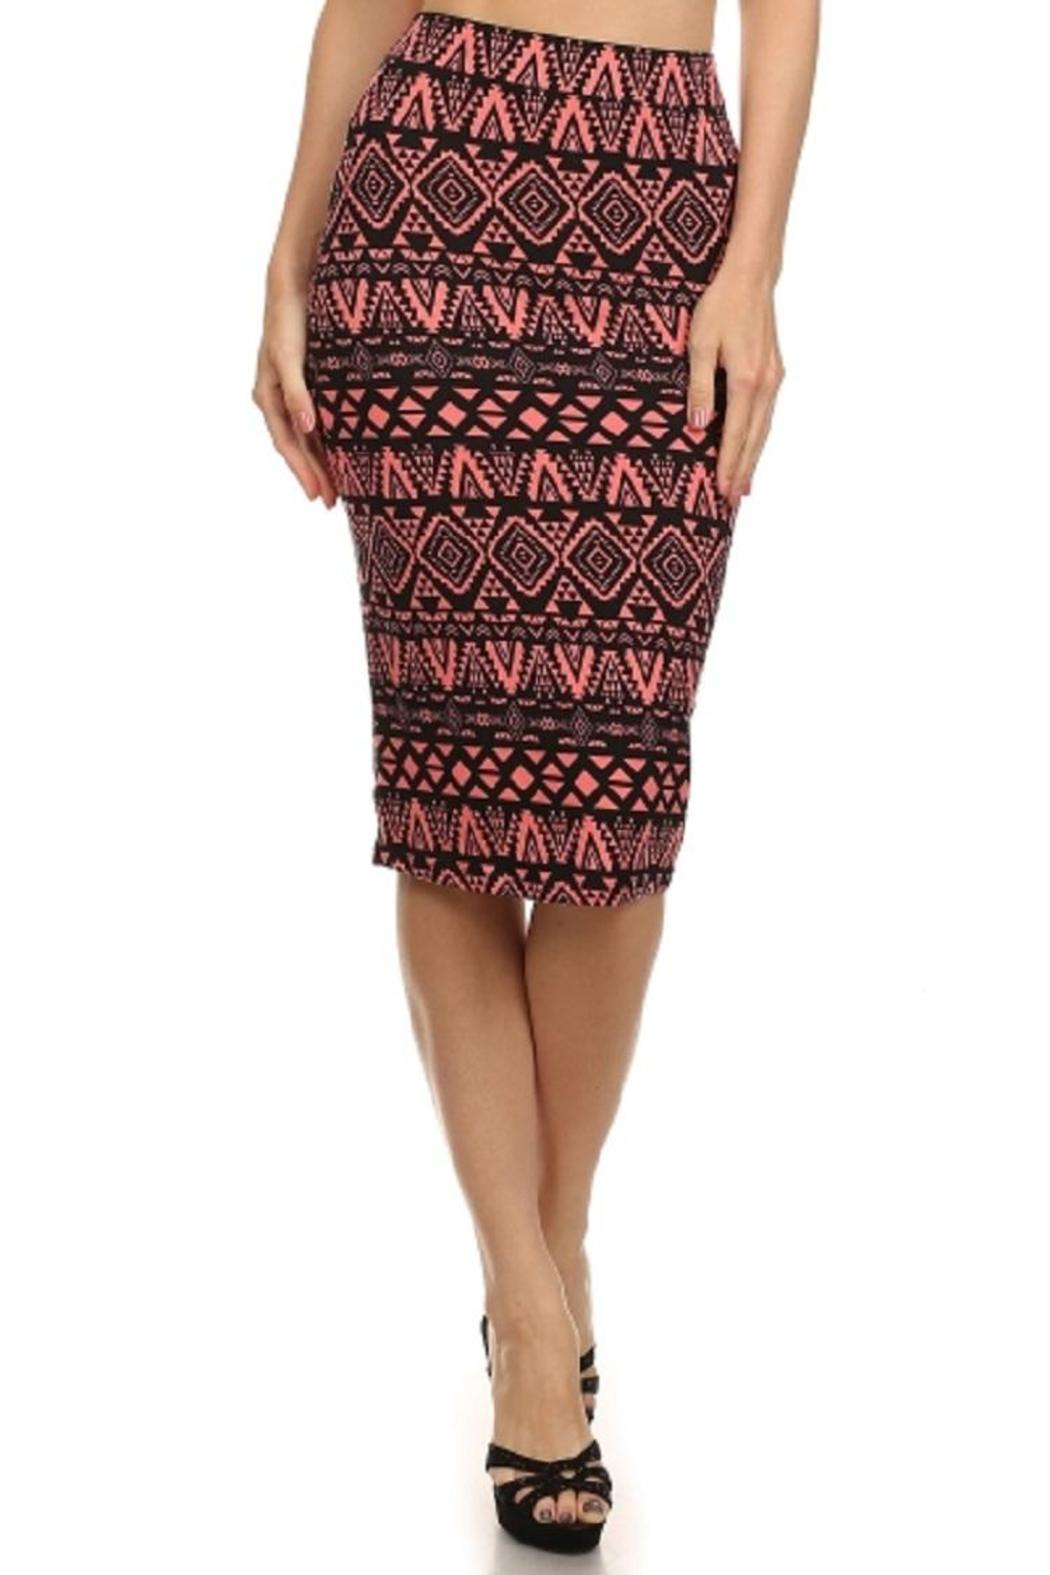 iris design aztec pencil skirt from st george by the nook